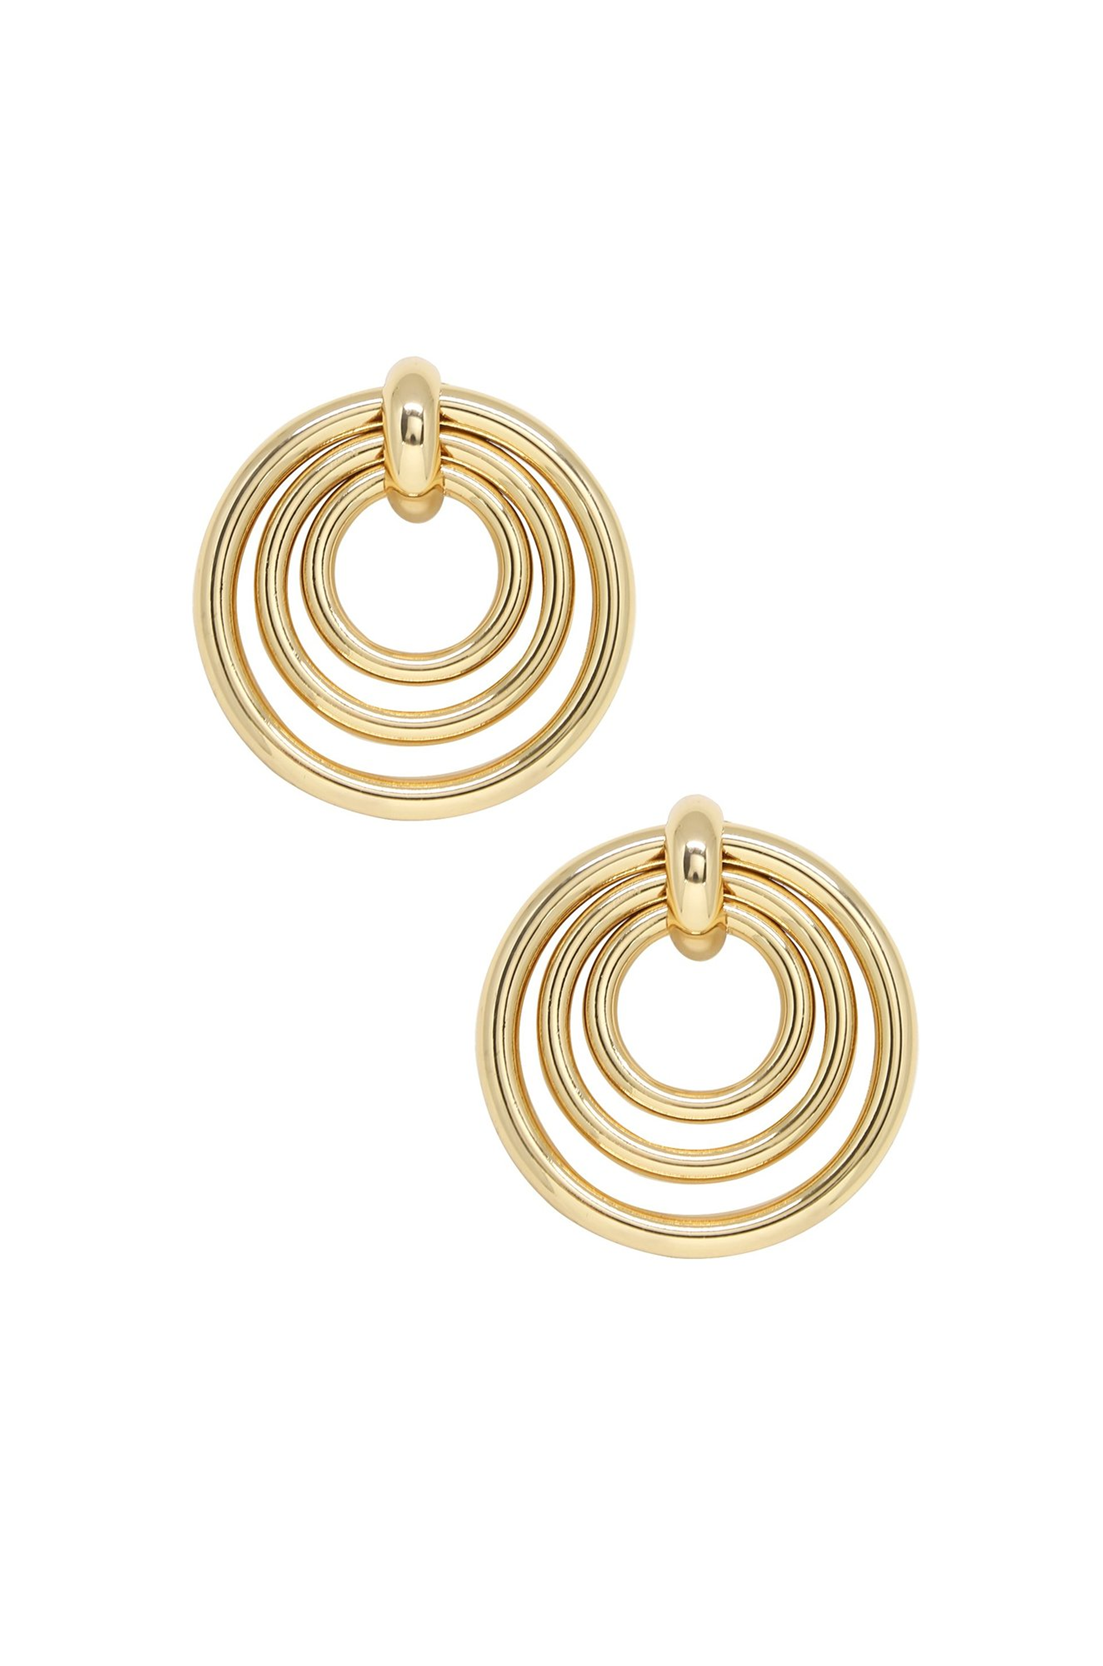 Layered Multi-Ring 18k Gold Plated Earrings